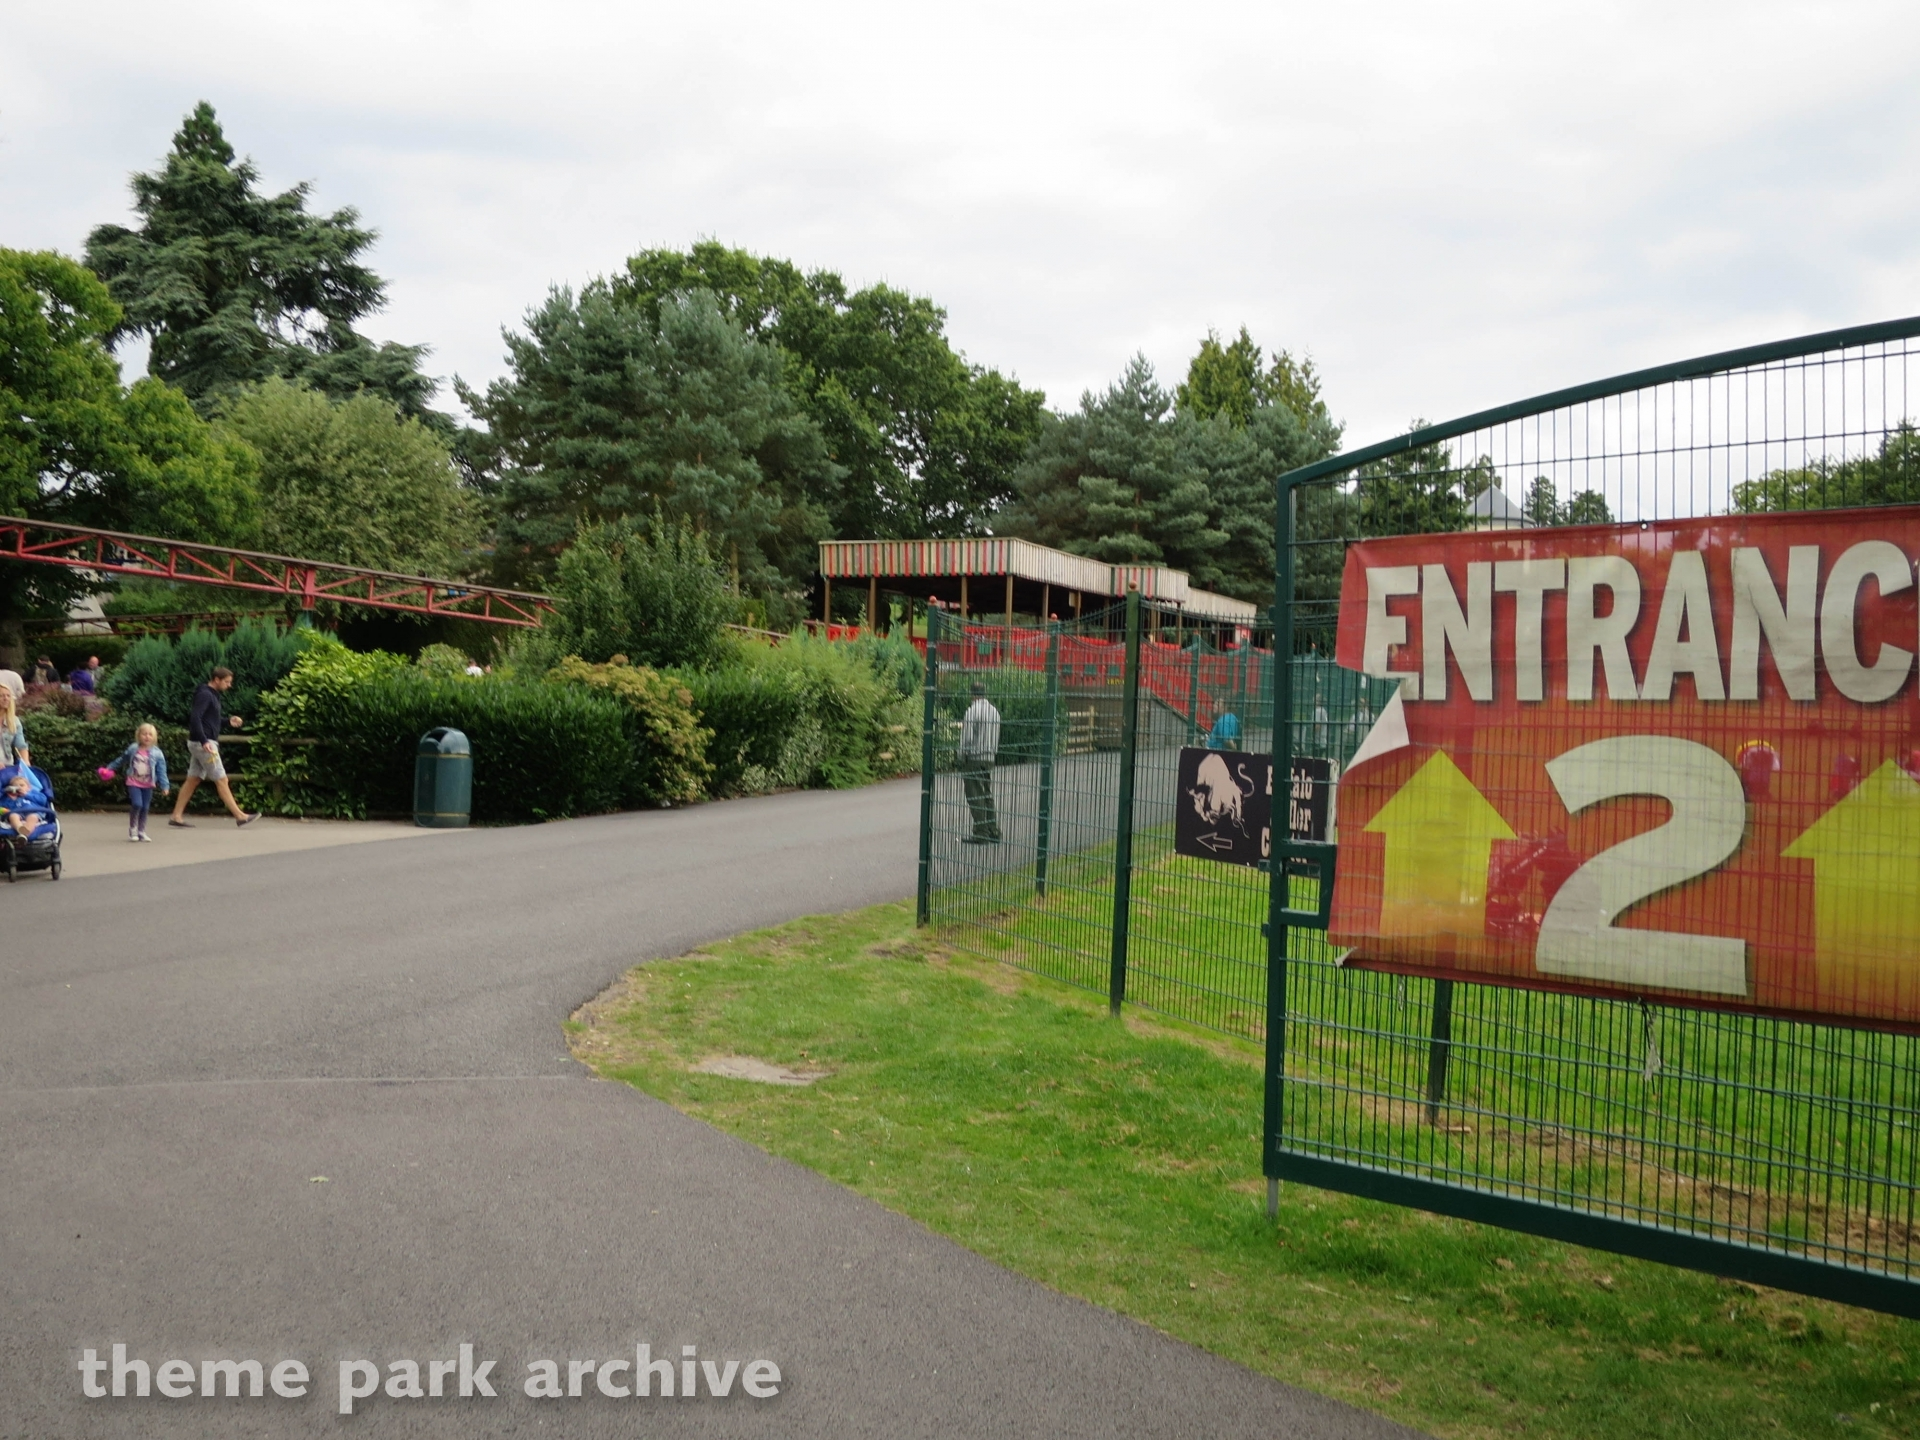 Entrance 2 at Drayton Manor